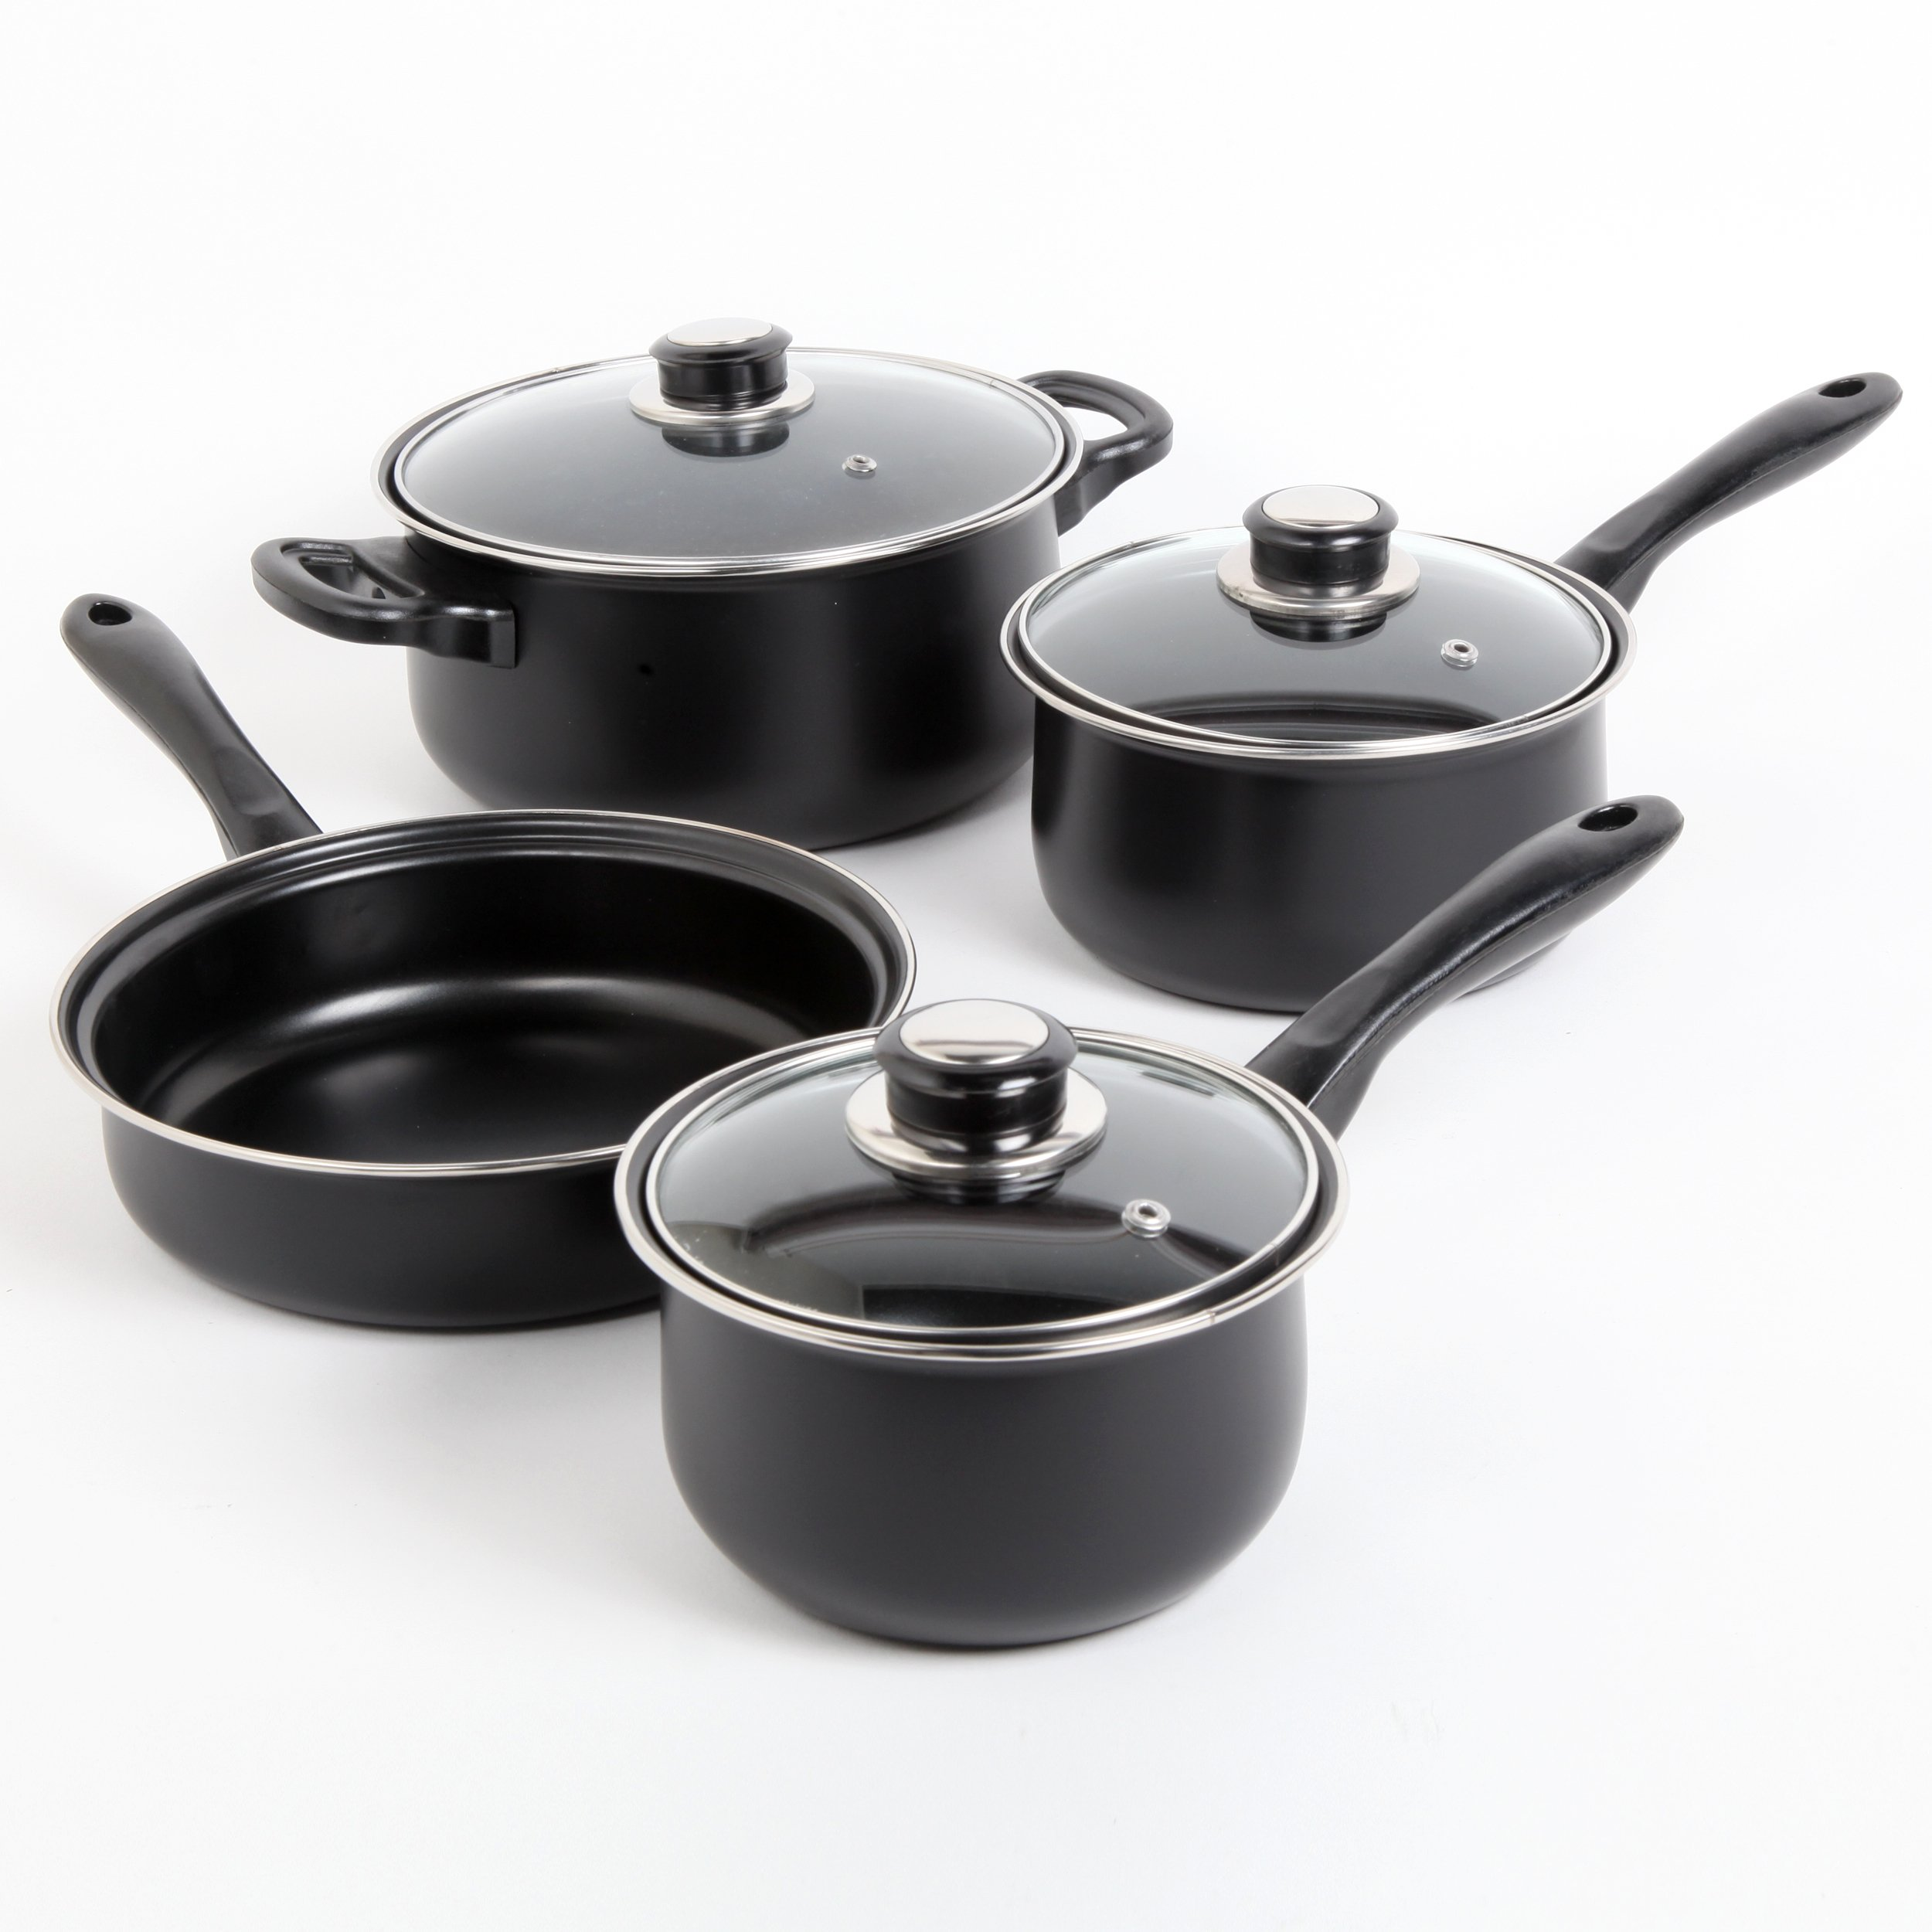 Sunbeam Newbrook 7-Piece Cookware Set, Black